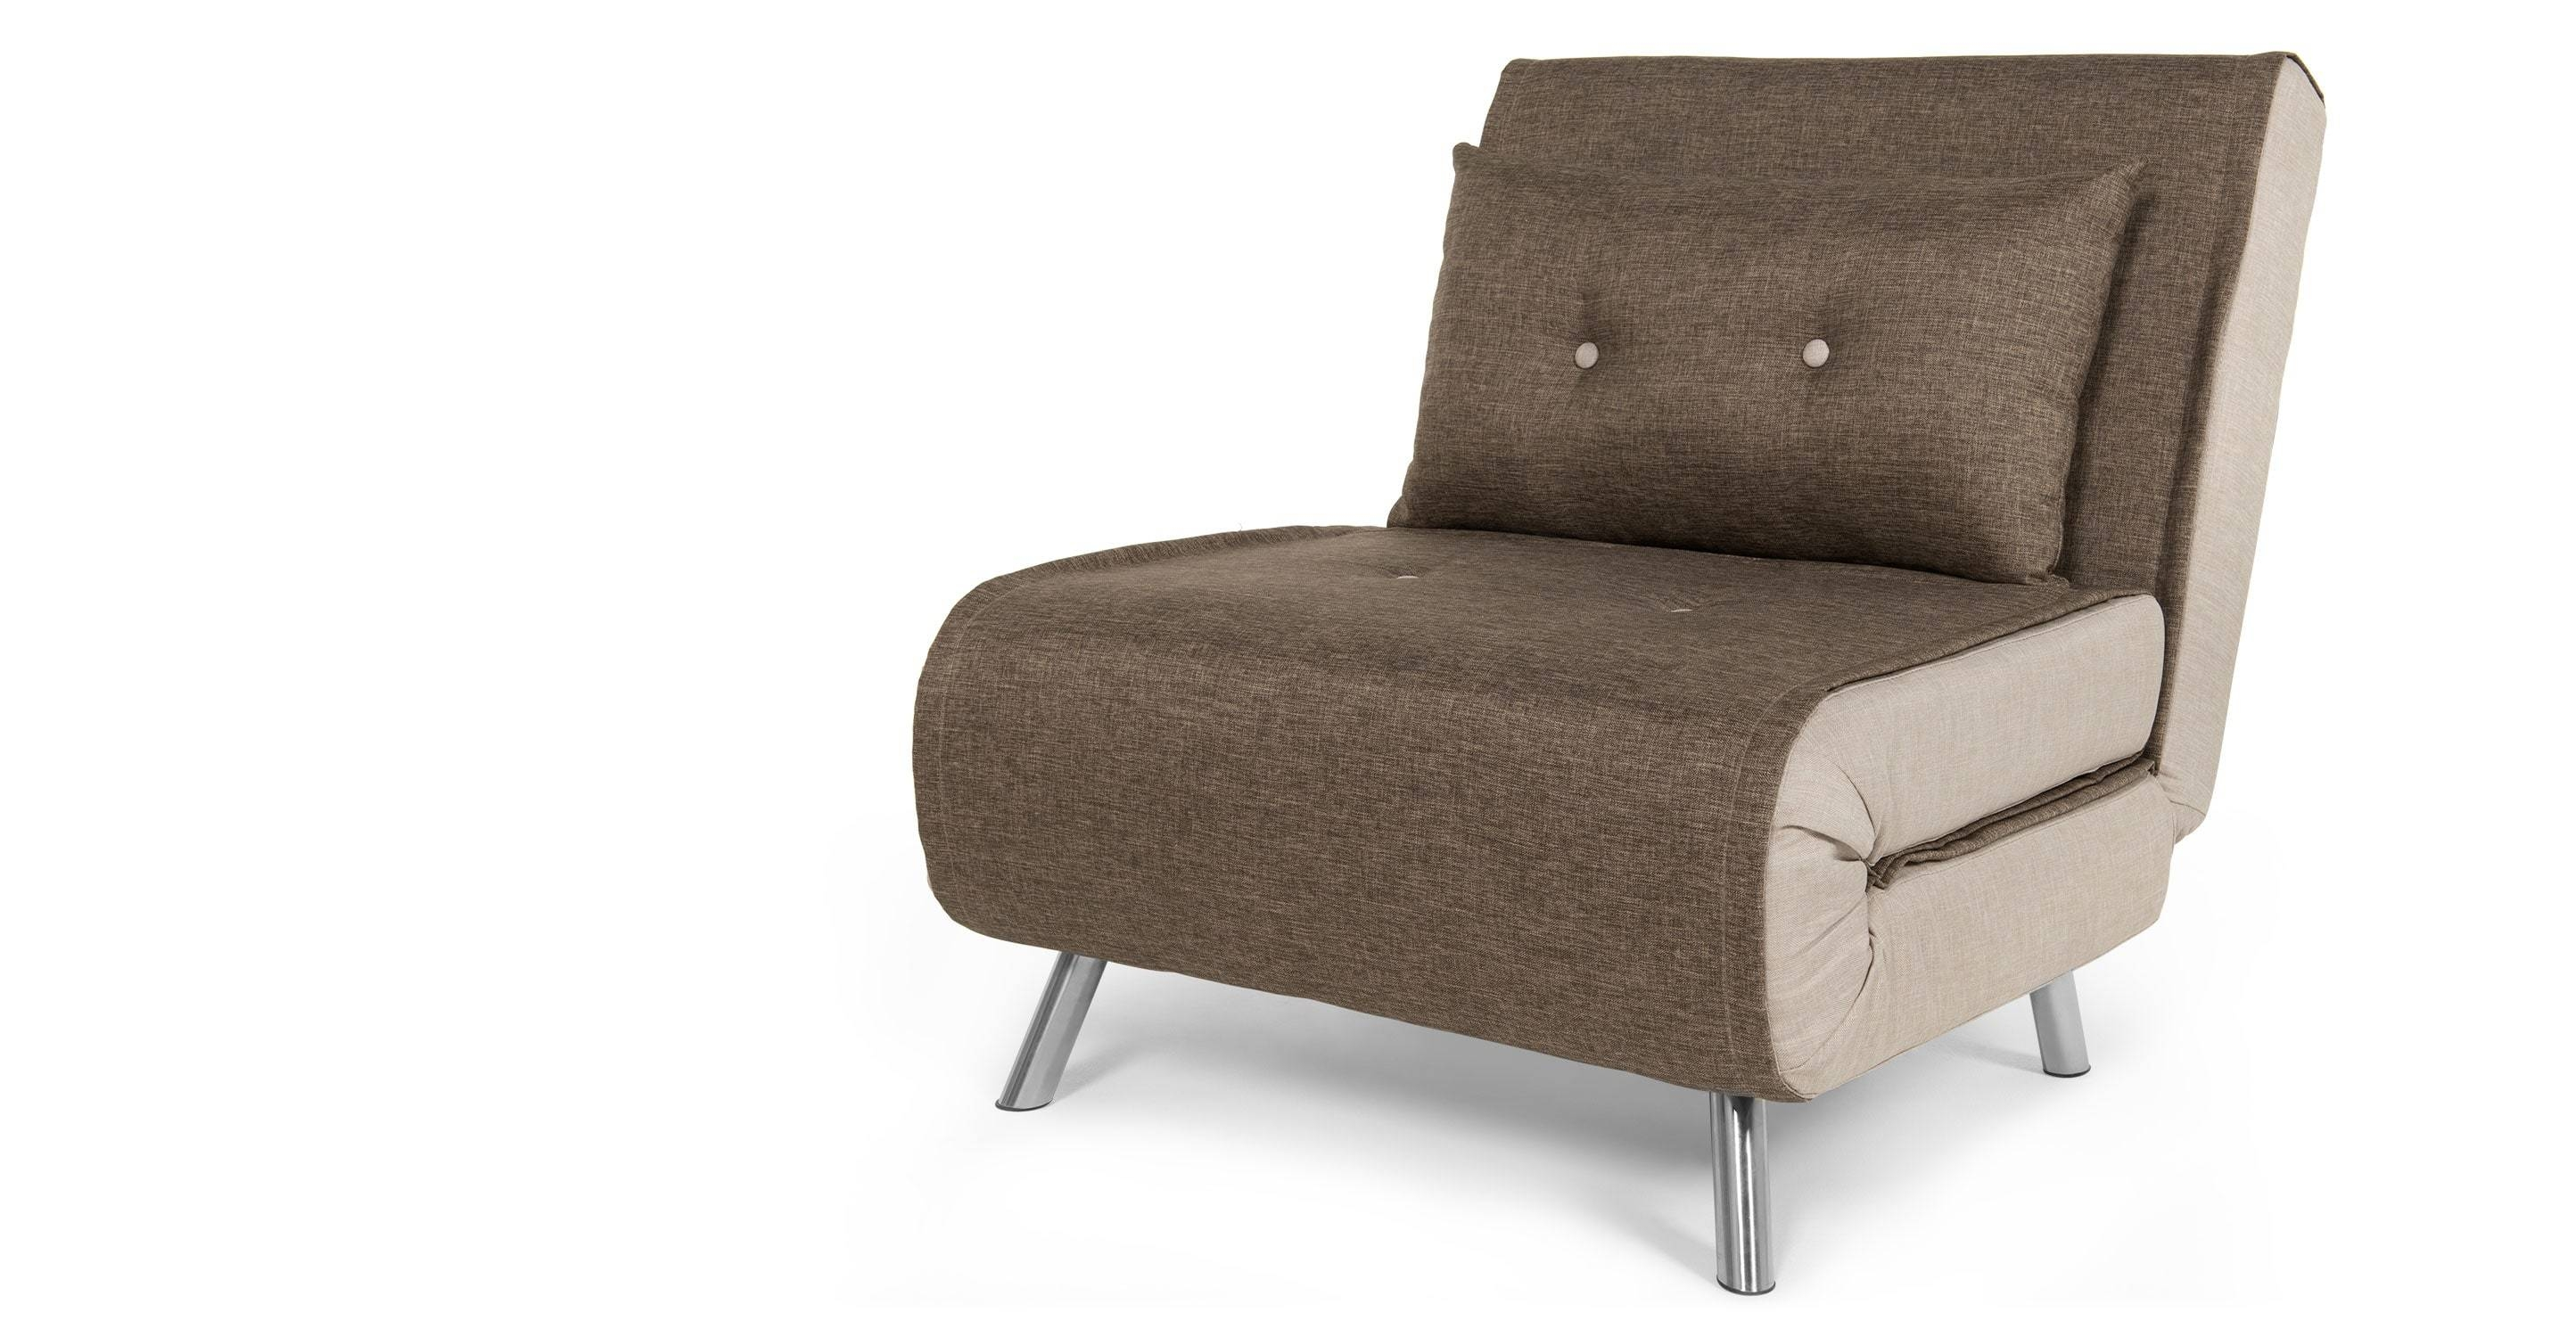 Haru Single Sofa Bed, Quartz Blue | Made Pertaining To Single Sofa Bed Chairs (View 10 of 15)